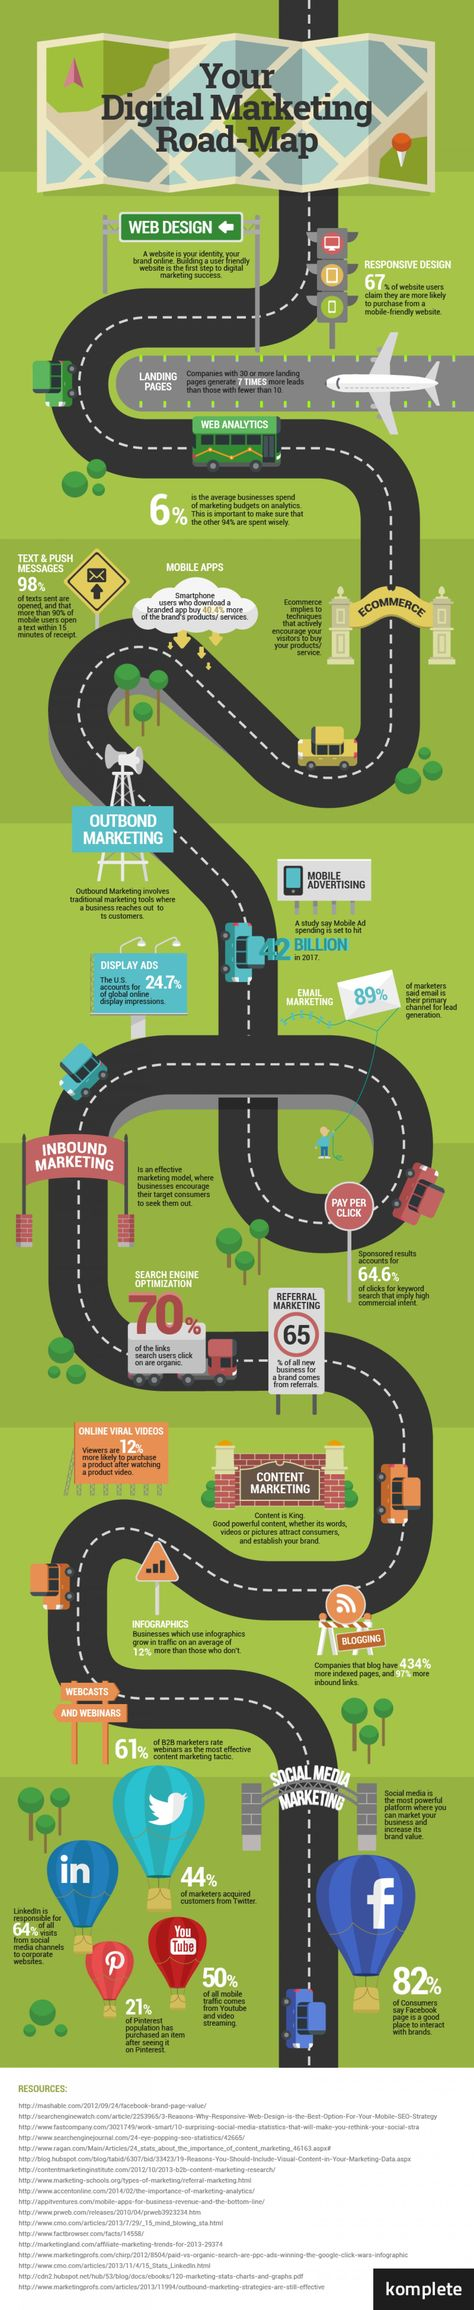 Web, Mobile, Email, Apps, Social Media - Your Digital Marketing Road Map [INFOGRAPHIC]